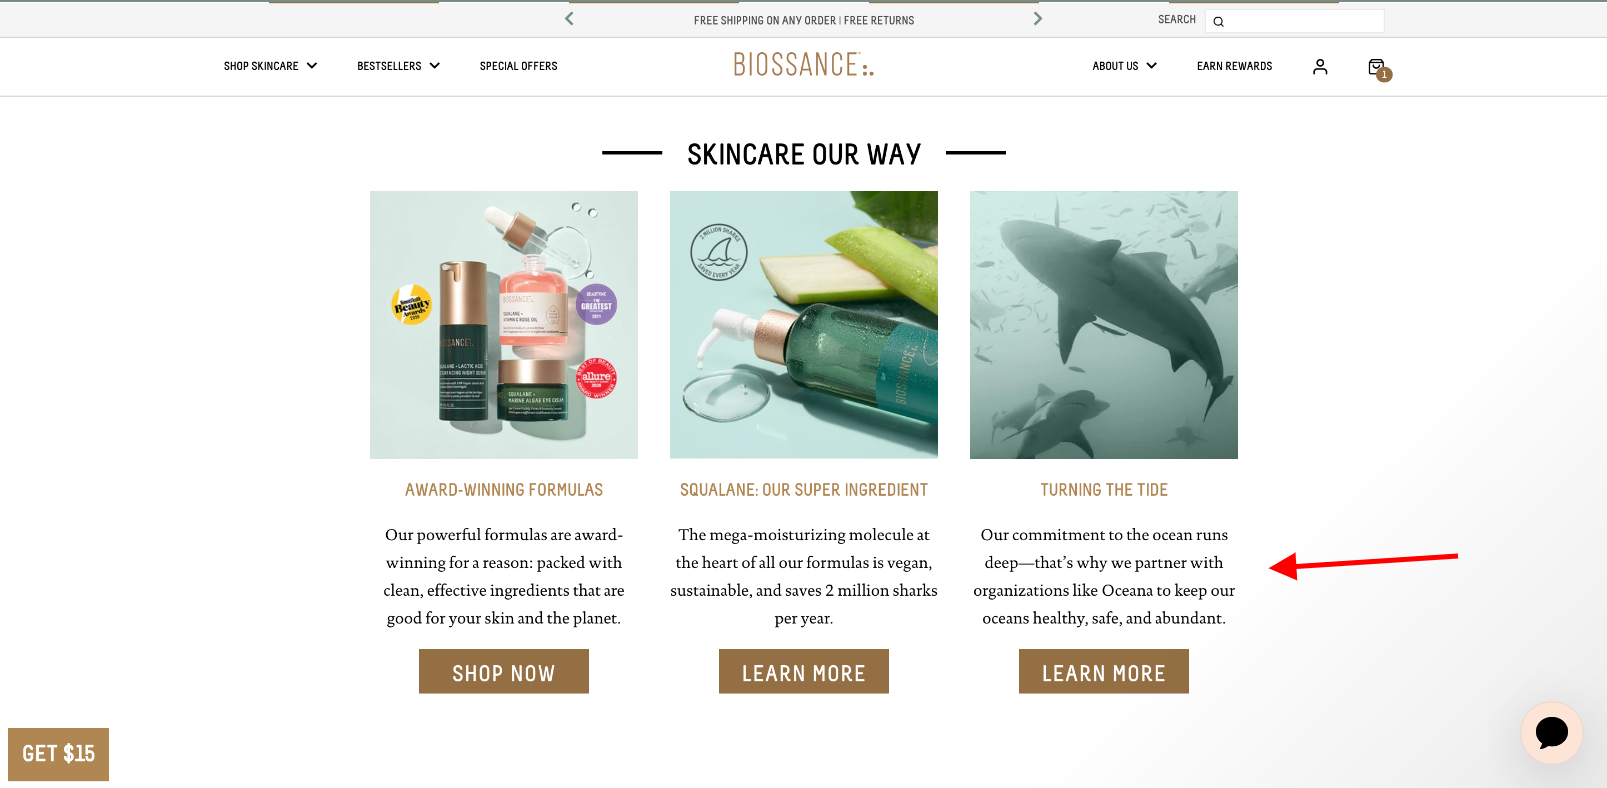 Biossance homepage promotion